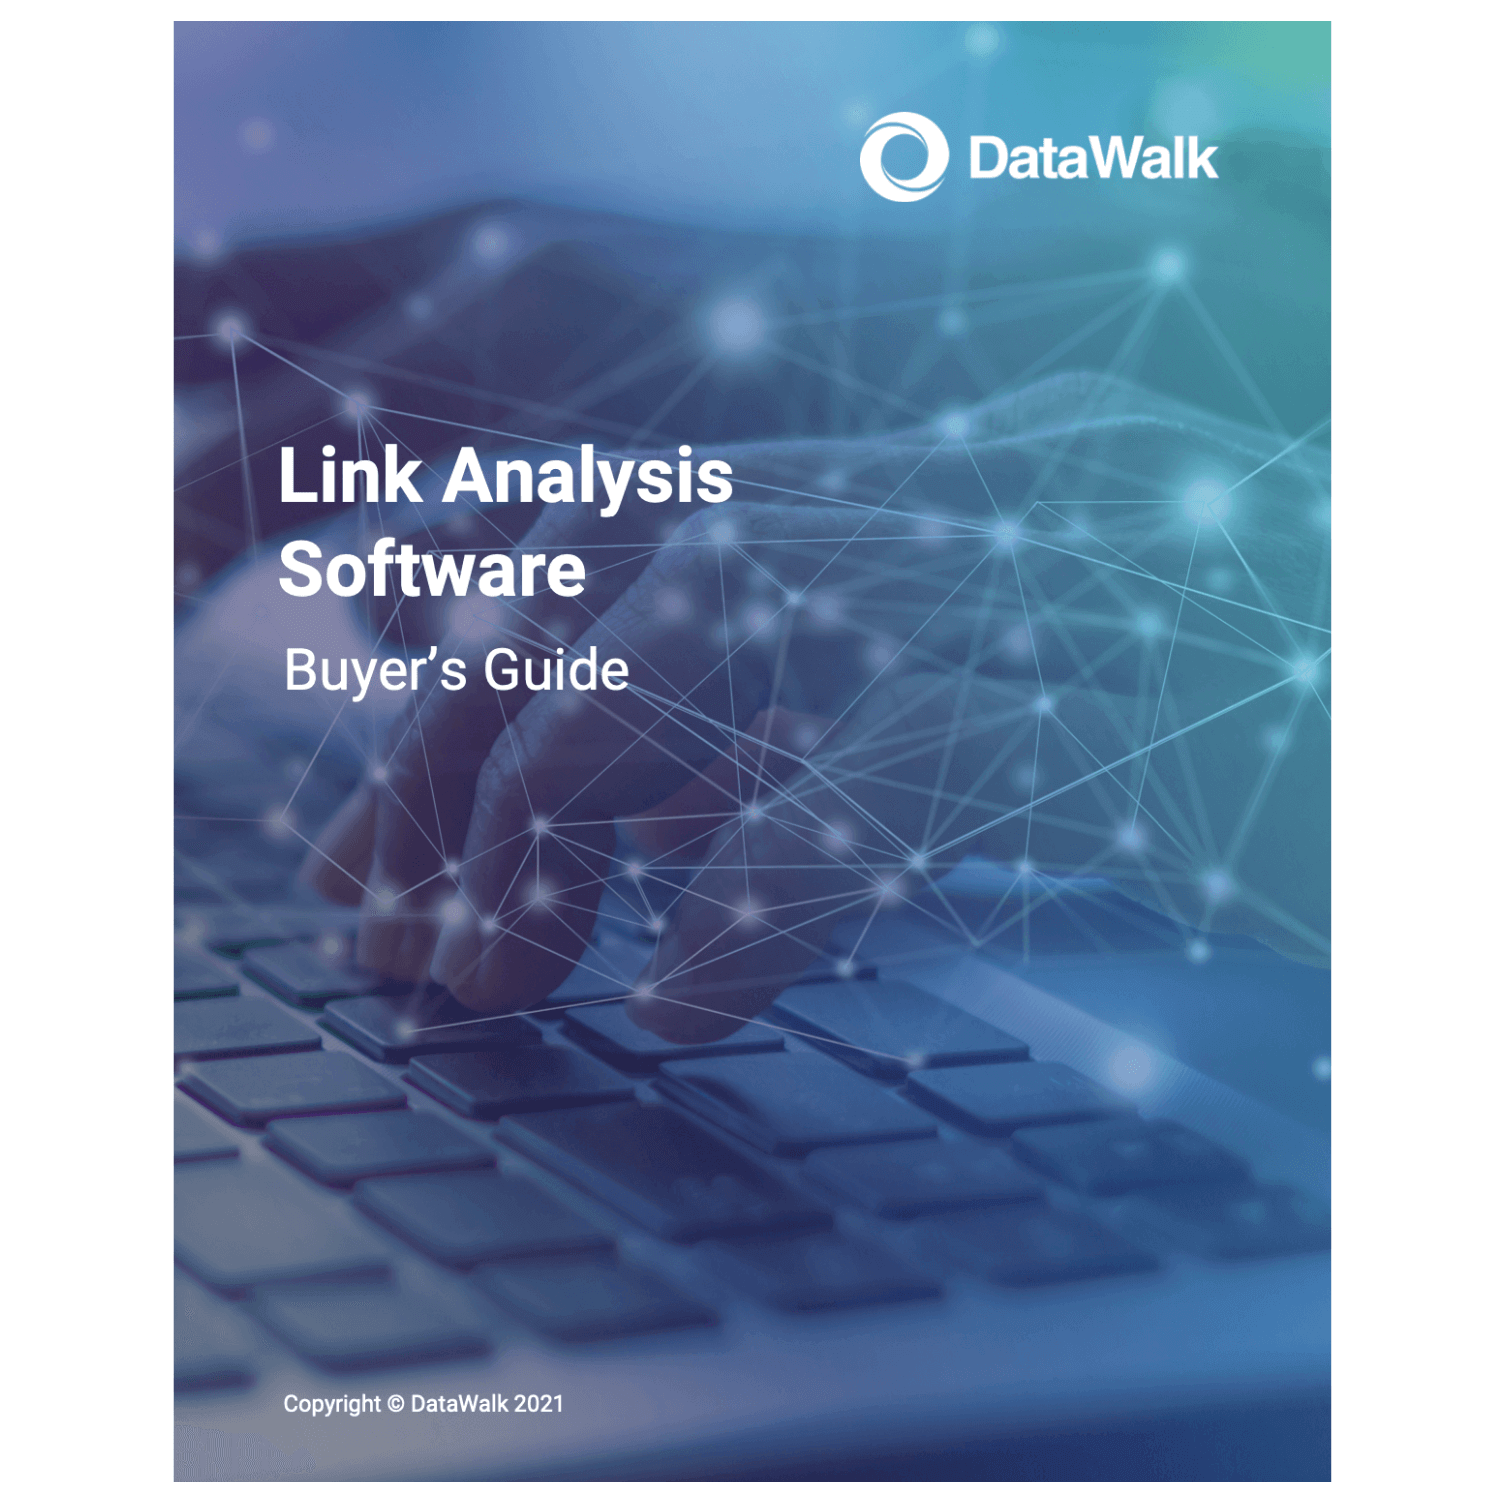 link analysis software guide